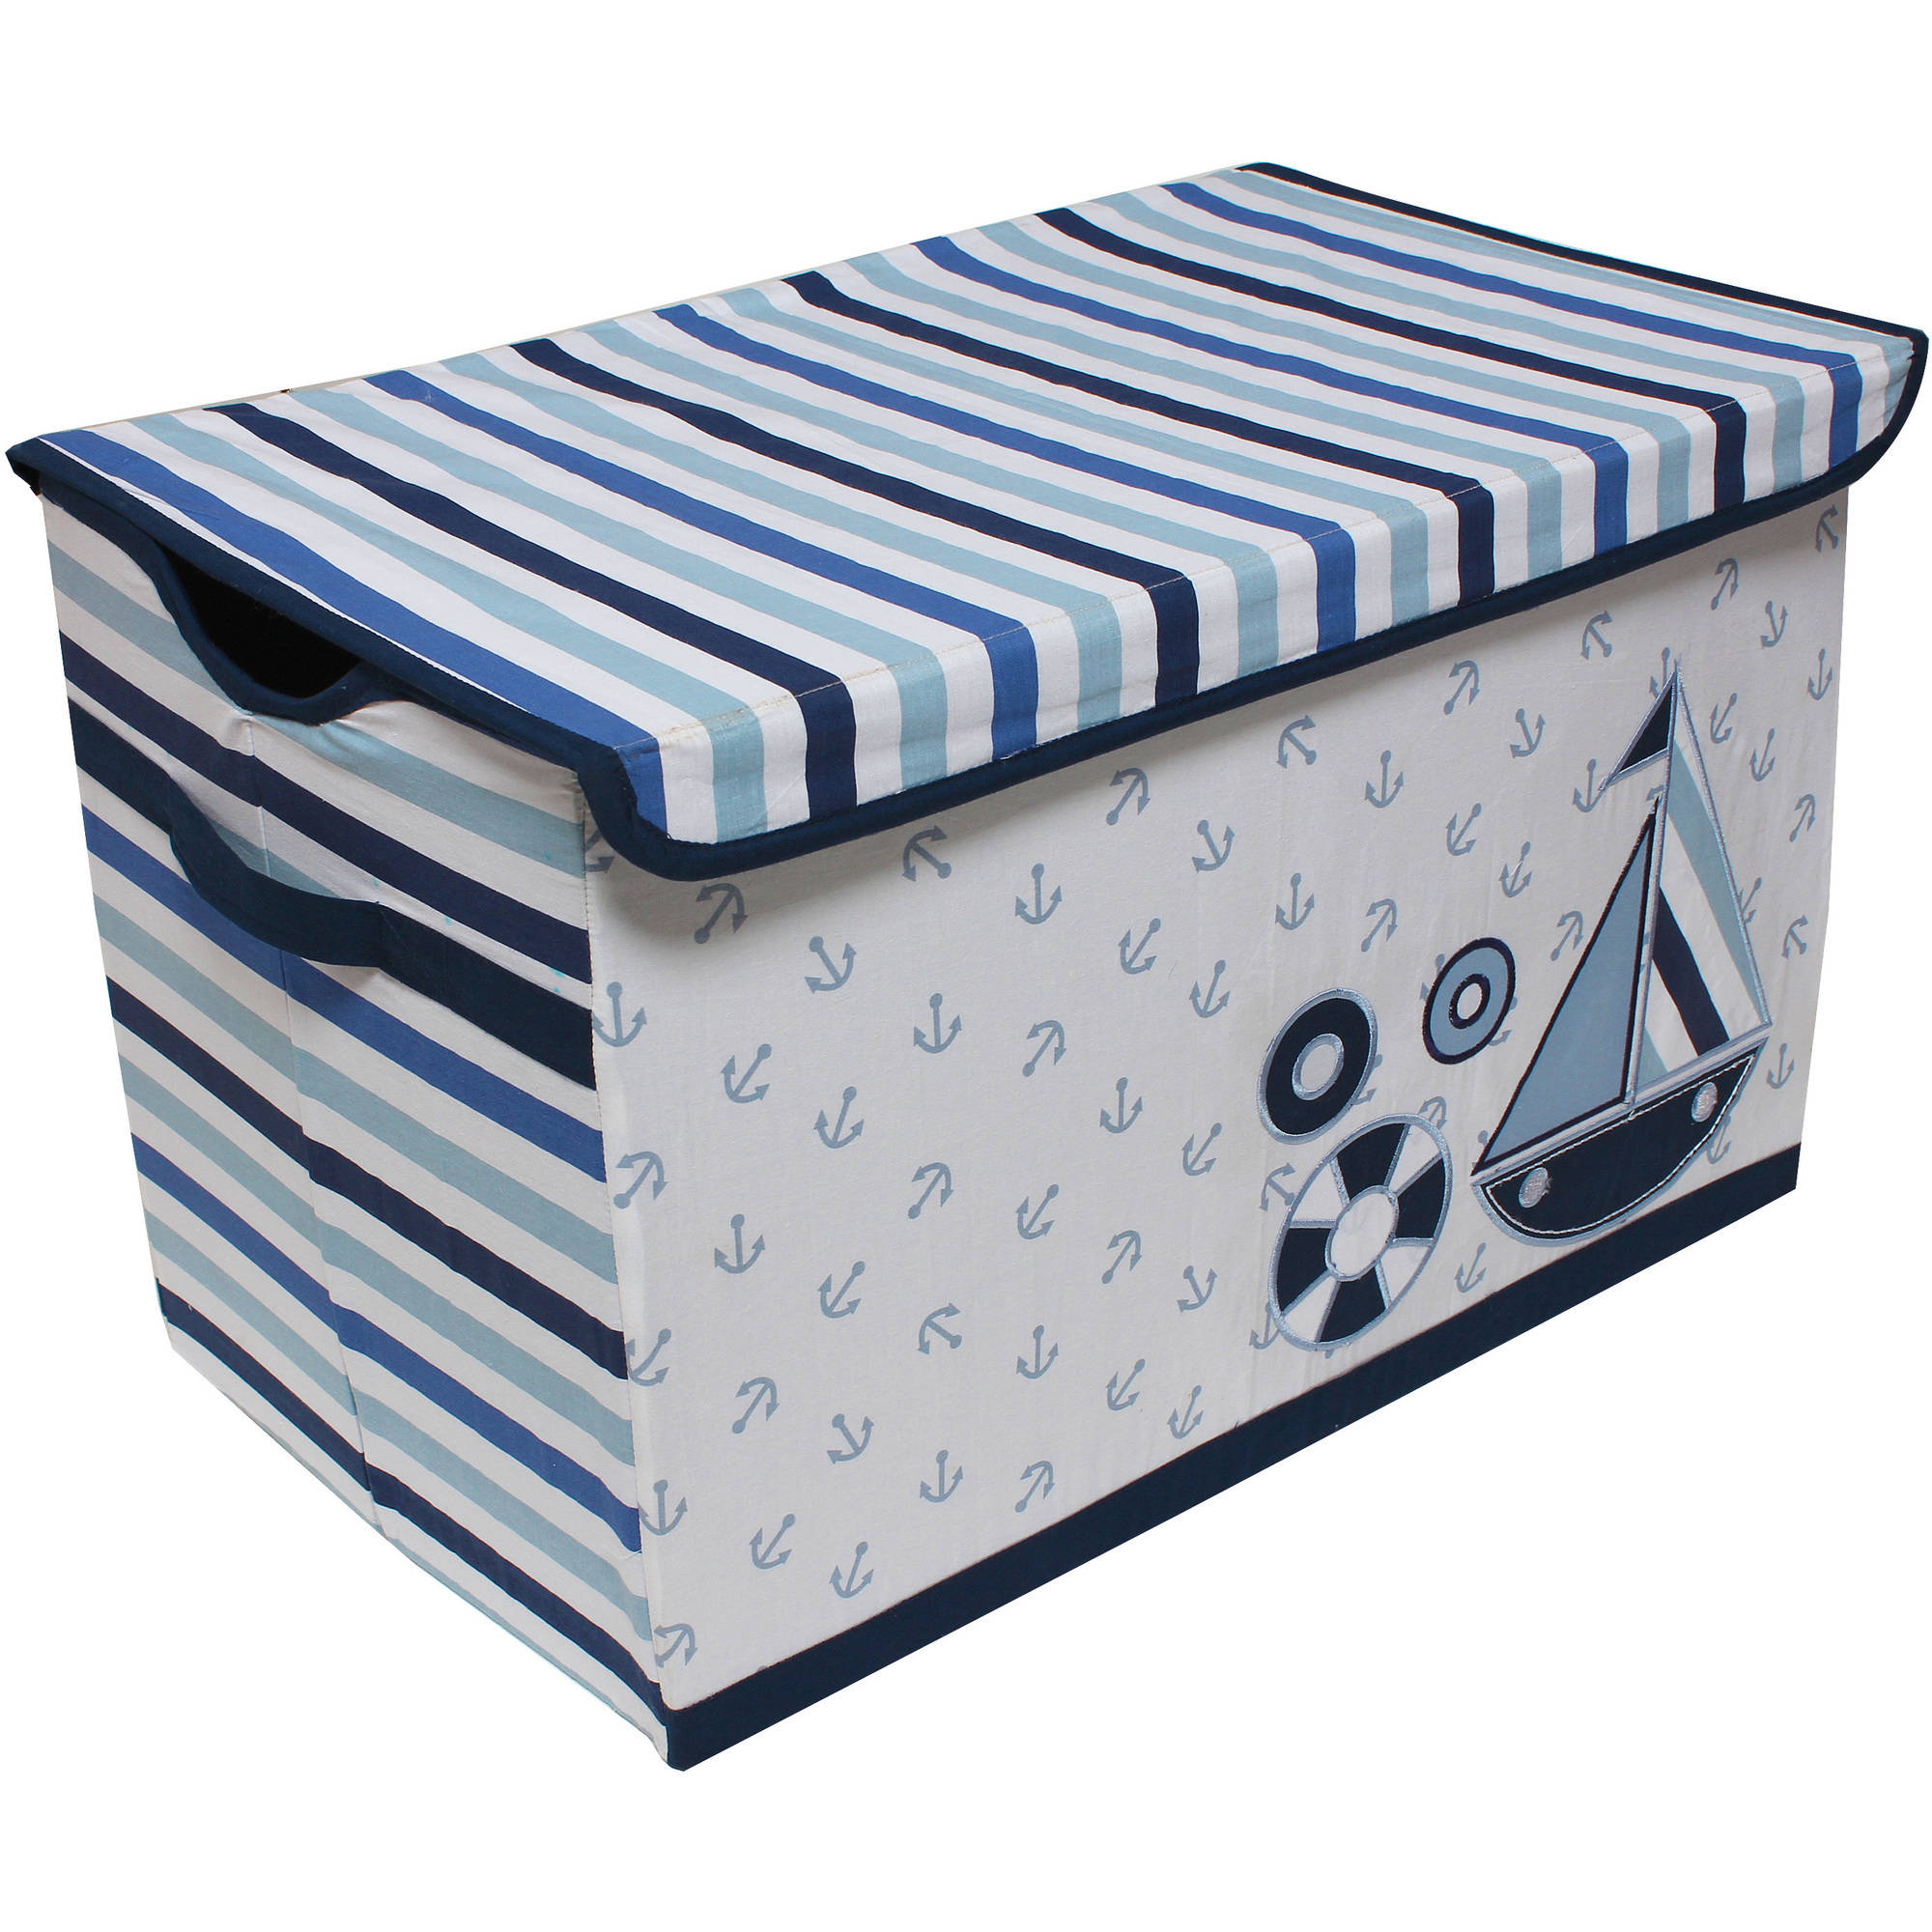 Bacati - Little Sailor Cotton Percale Fabric covered Storage, Toy Chest, 24.5 L x 15 W x 14 H inches